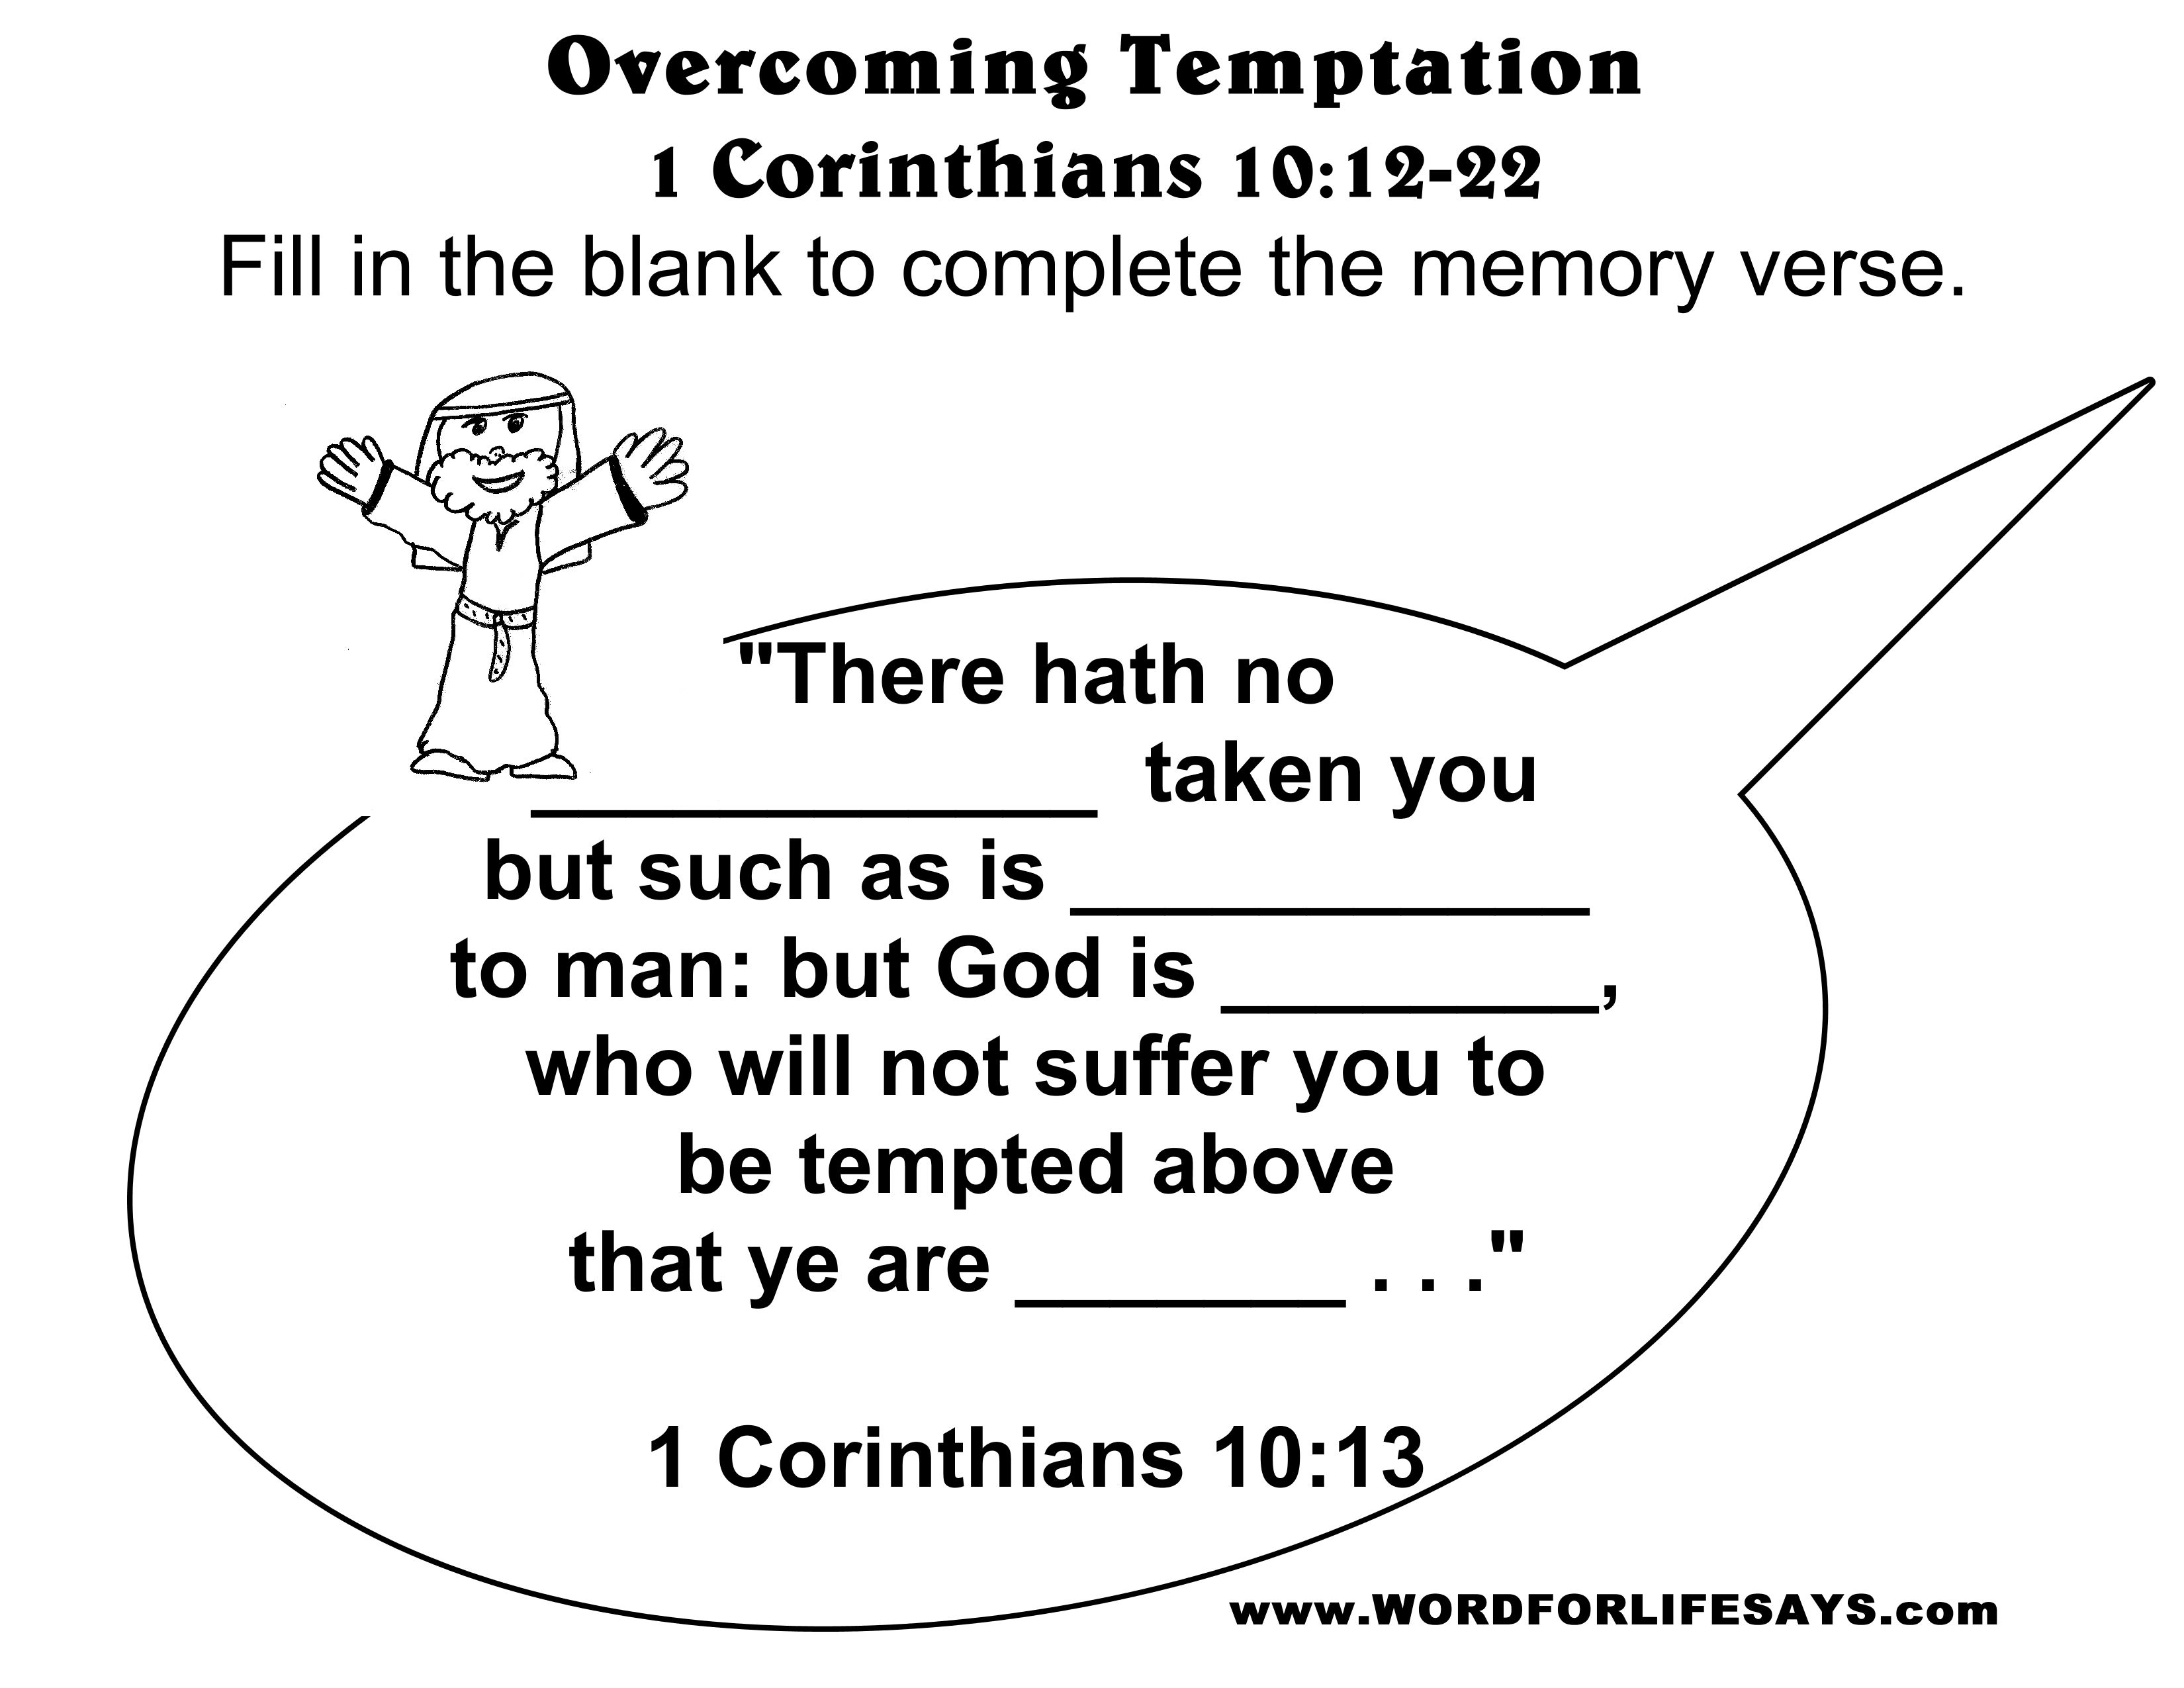 Overcoming Temptation Fill In The Blank Memory Verse 001